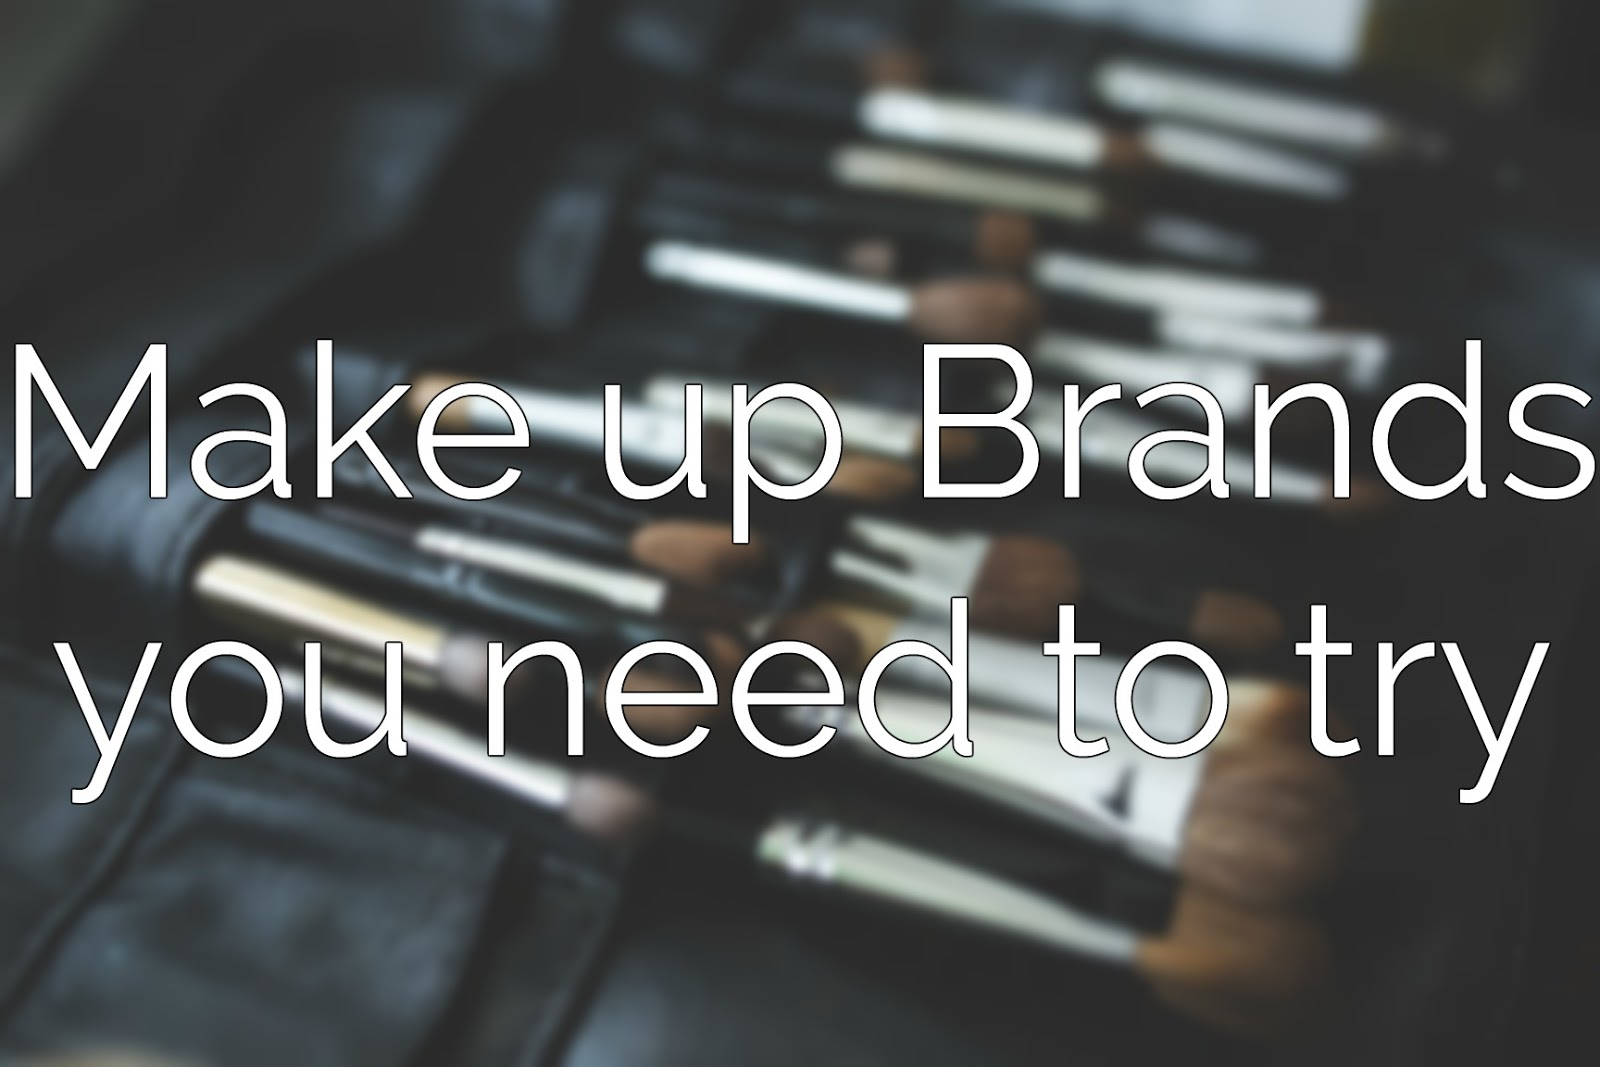 Make up brands - first impressions - make up - beauty - bellapierre - essence - freedom - Jane Iredale - Make up - Wunder2